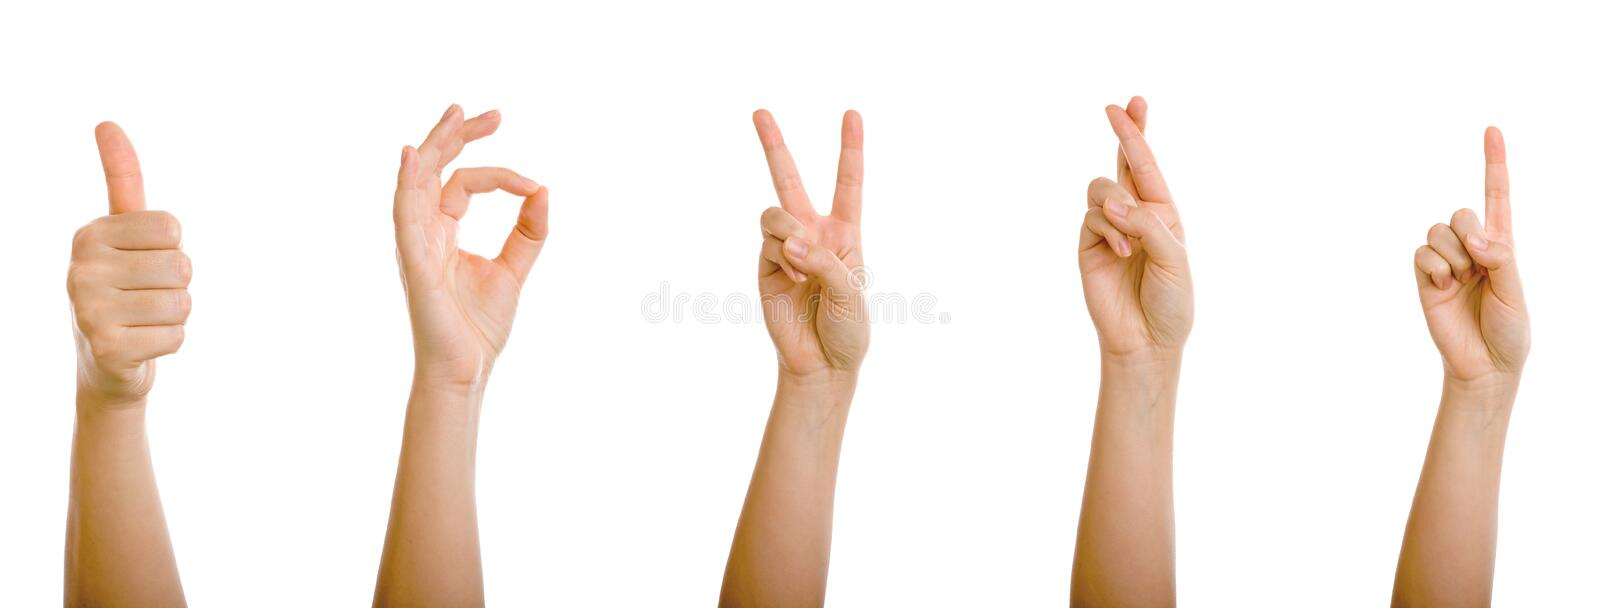 Download Gesturing Hands stock image. Image of activity, thumb - 7778775